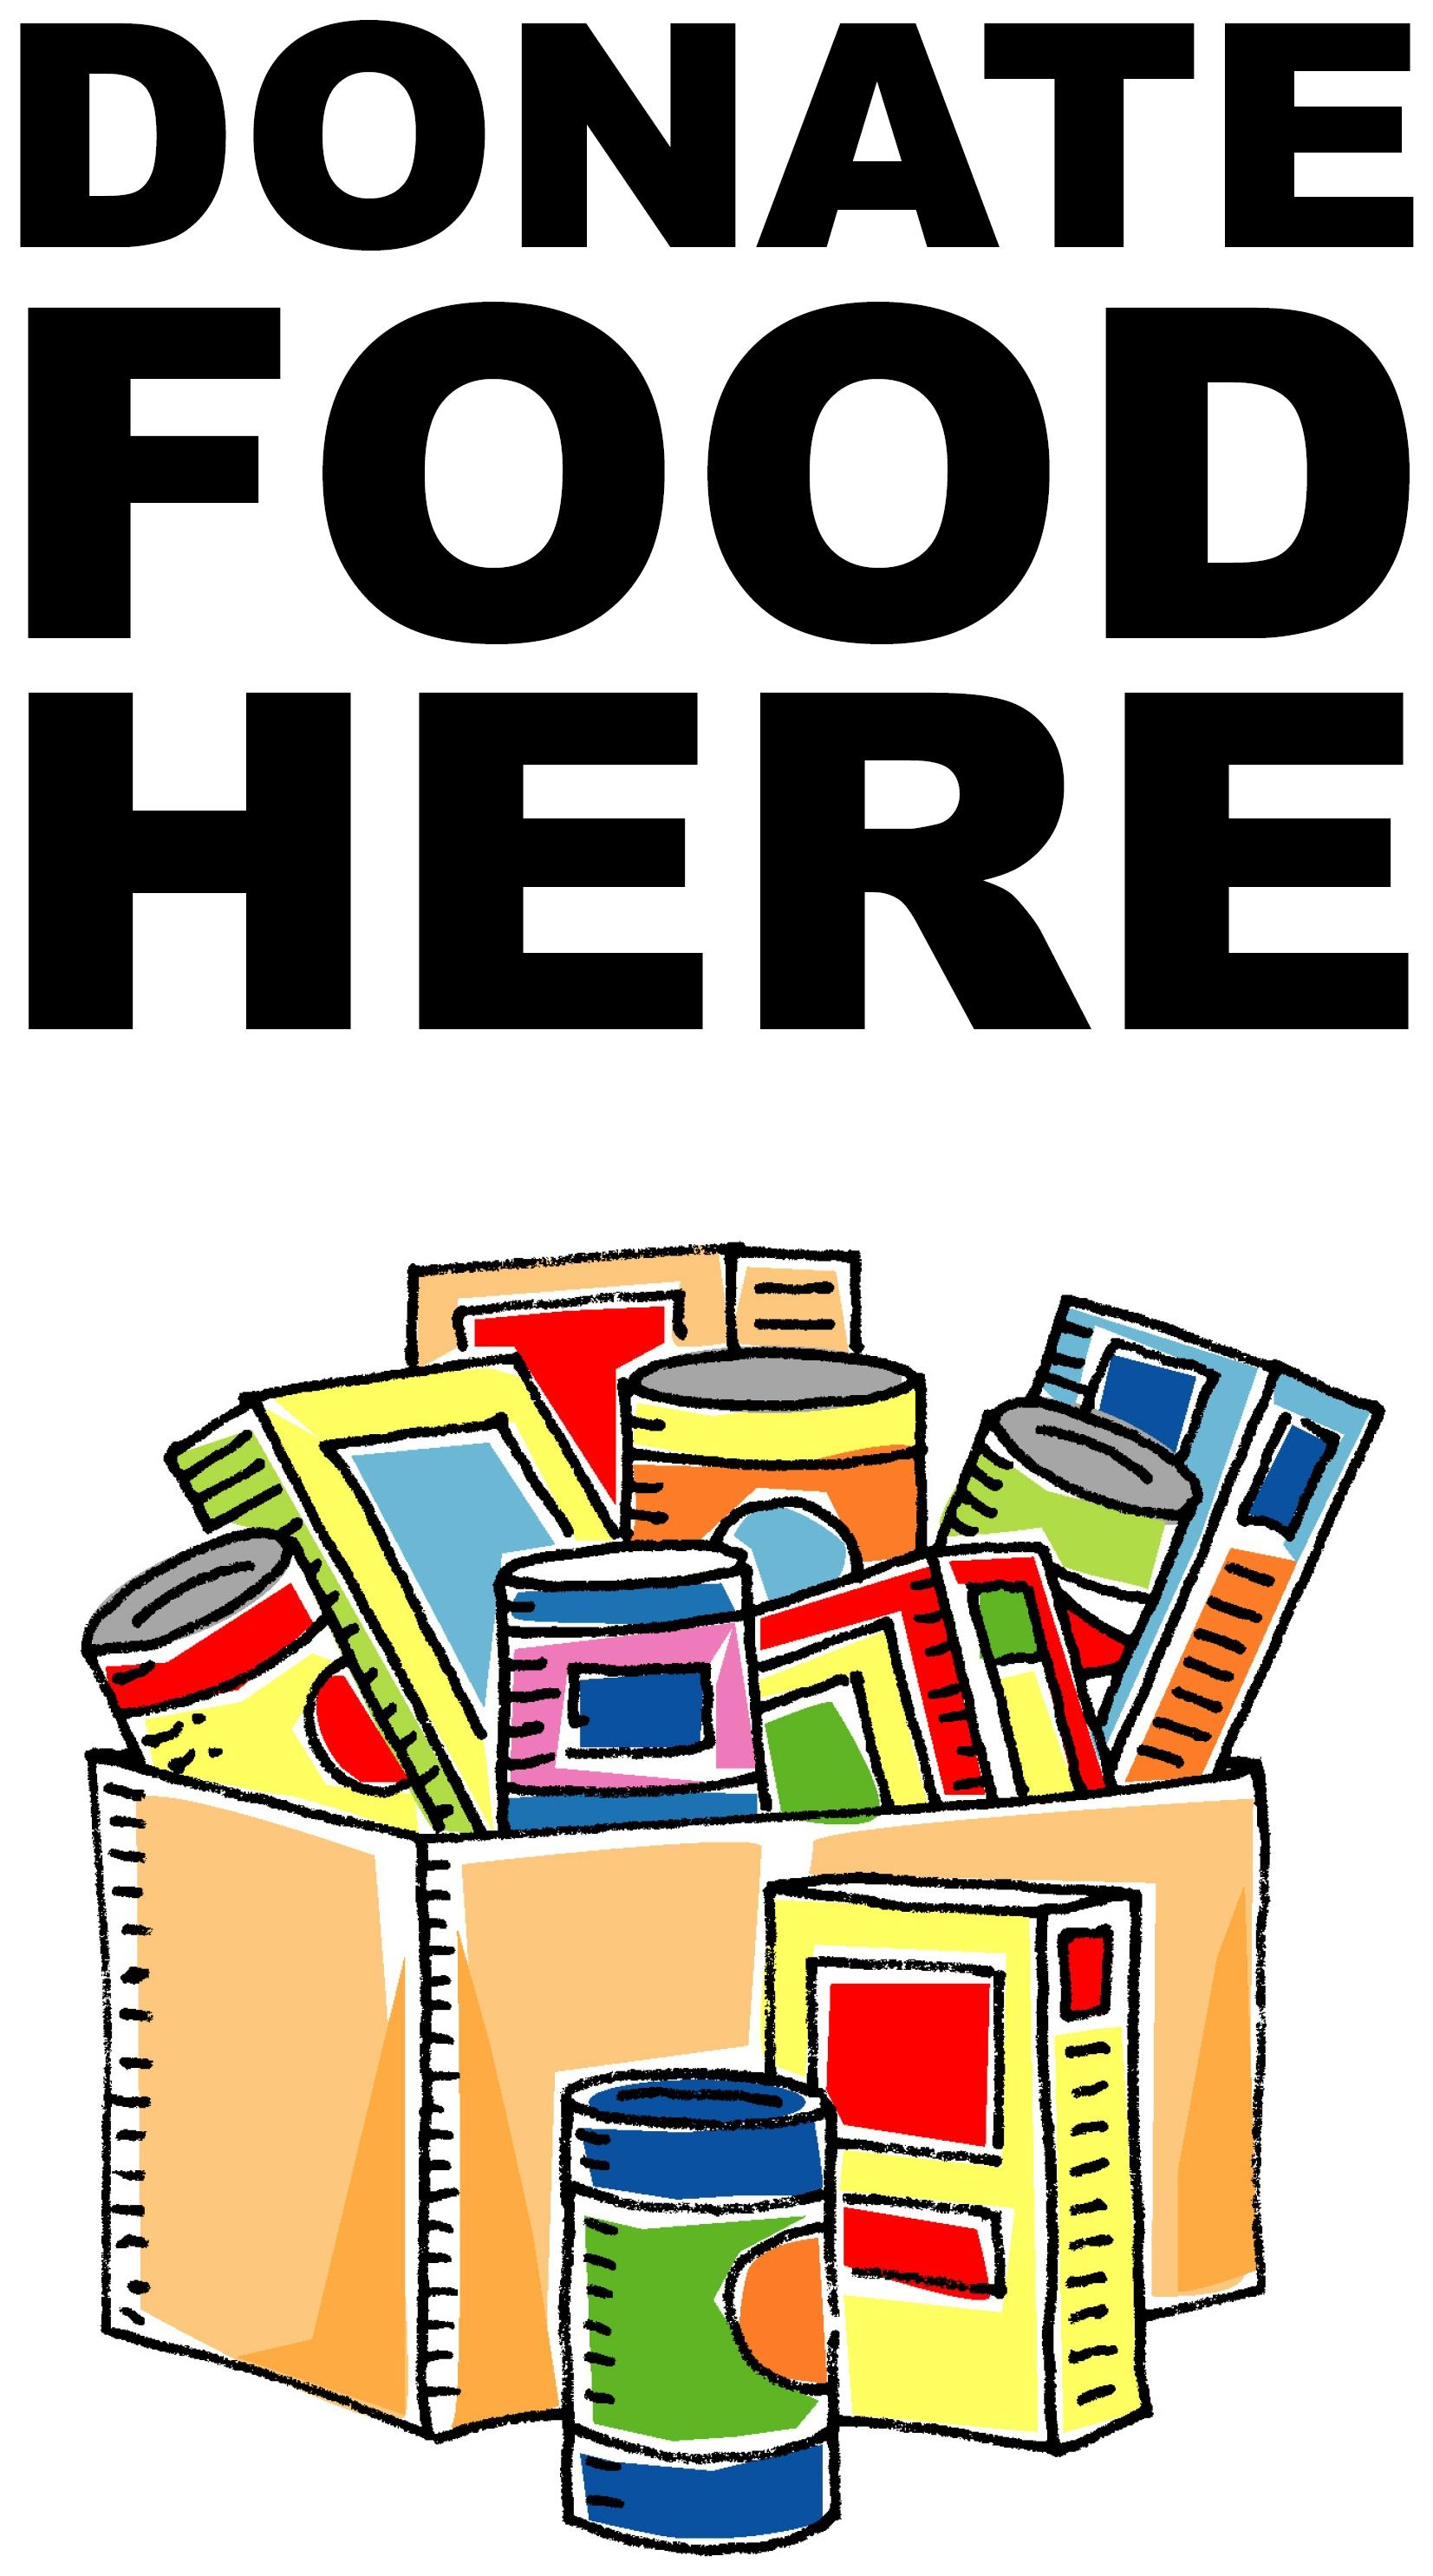 Canned Food Drive Slogans Can Food Drive-Canned Food Drive Slogans Can Food Drive Clip Art-5